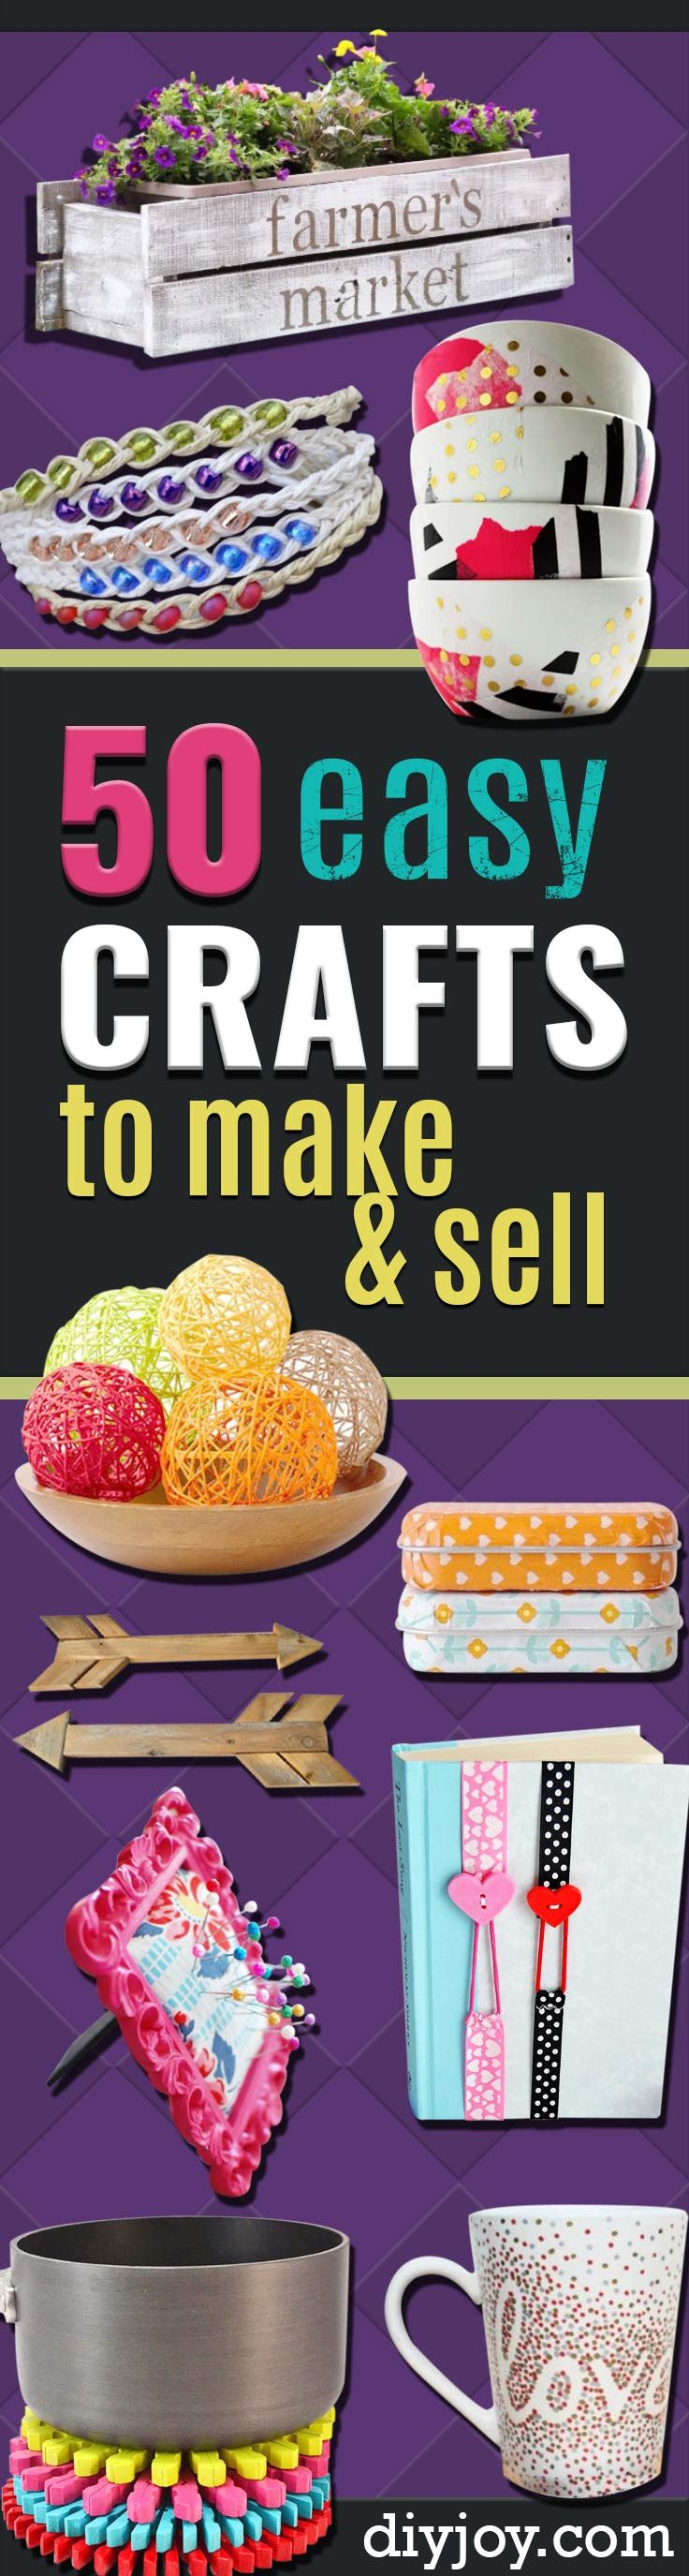 50 Easy Crafts To Make And Sell Mega Diy Board Diy Crafts To